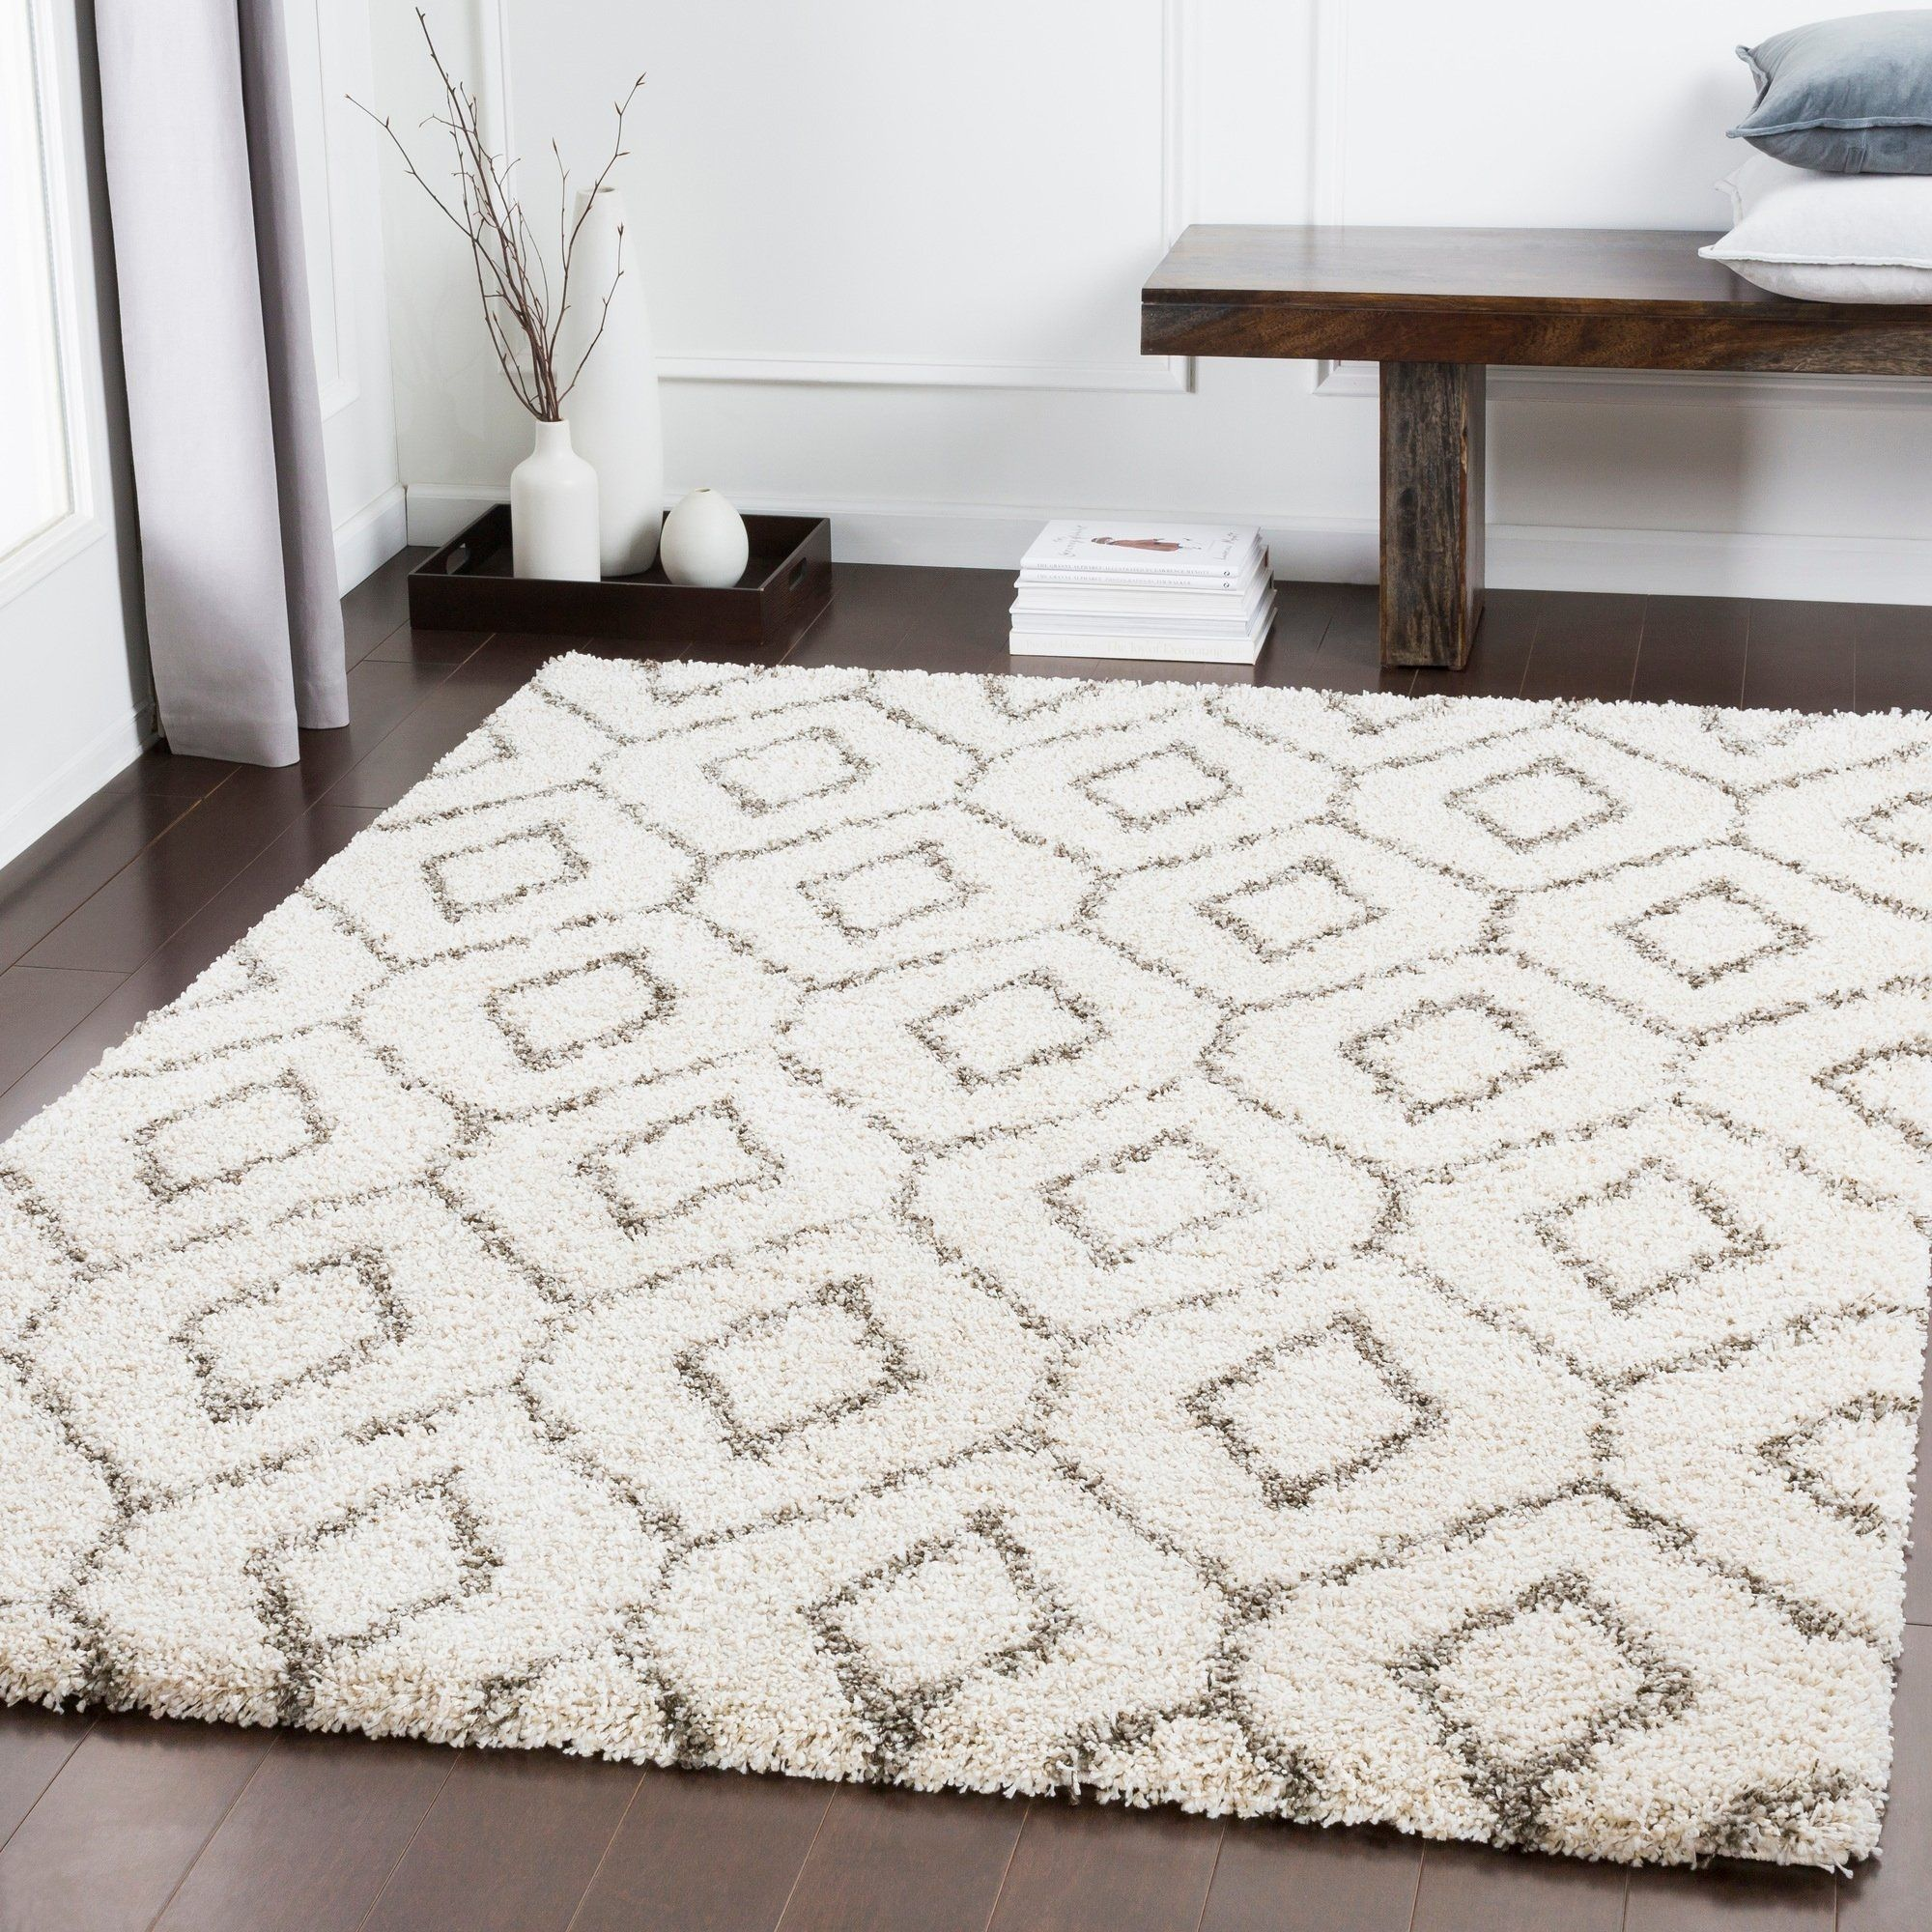 Online Shopping Bedding Furniture Electronics Jewelry Clothing More Area Rugs Trending Decor Rugs